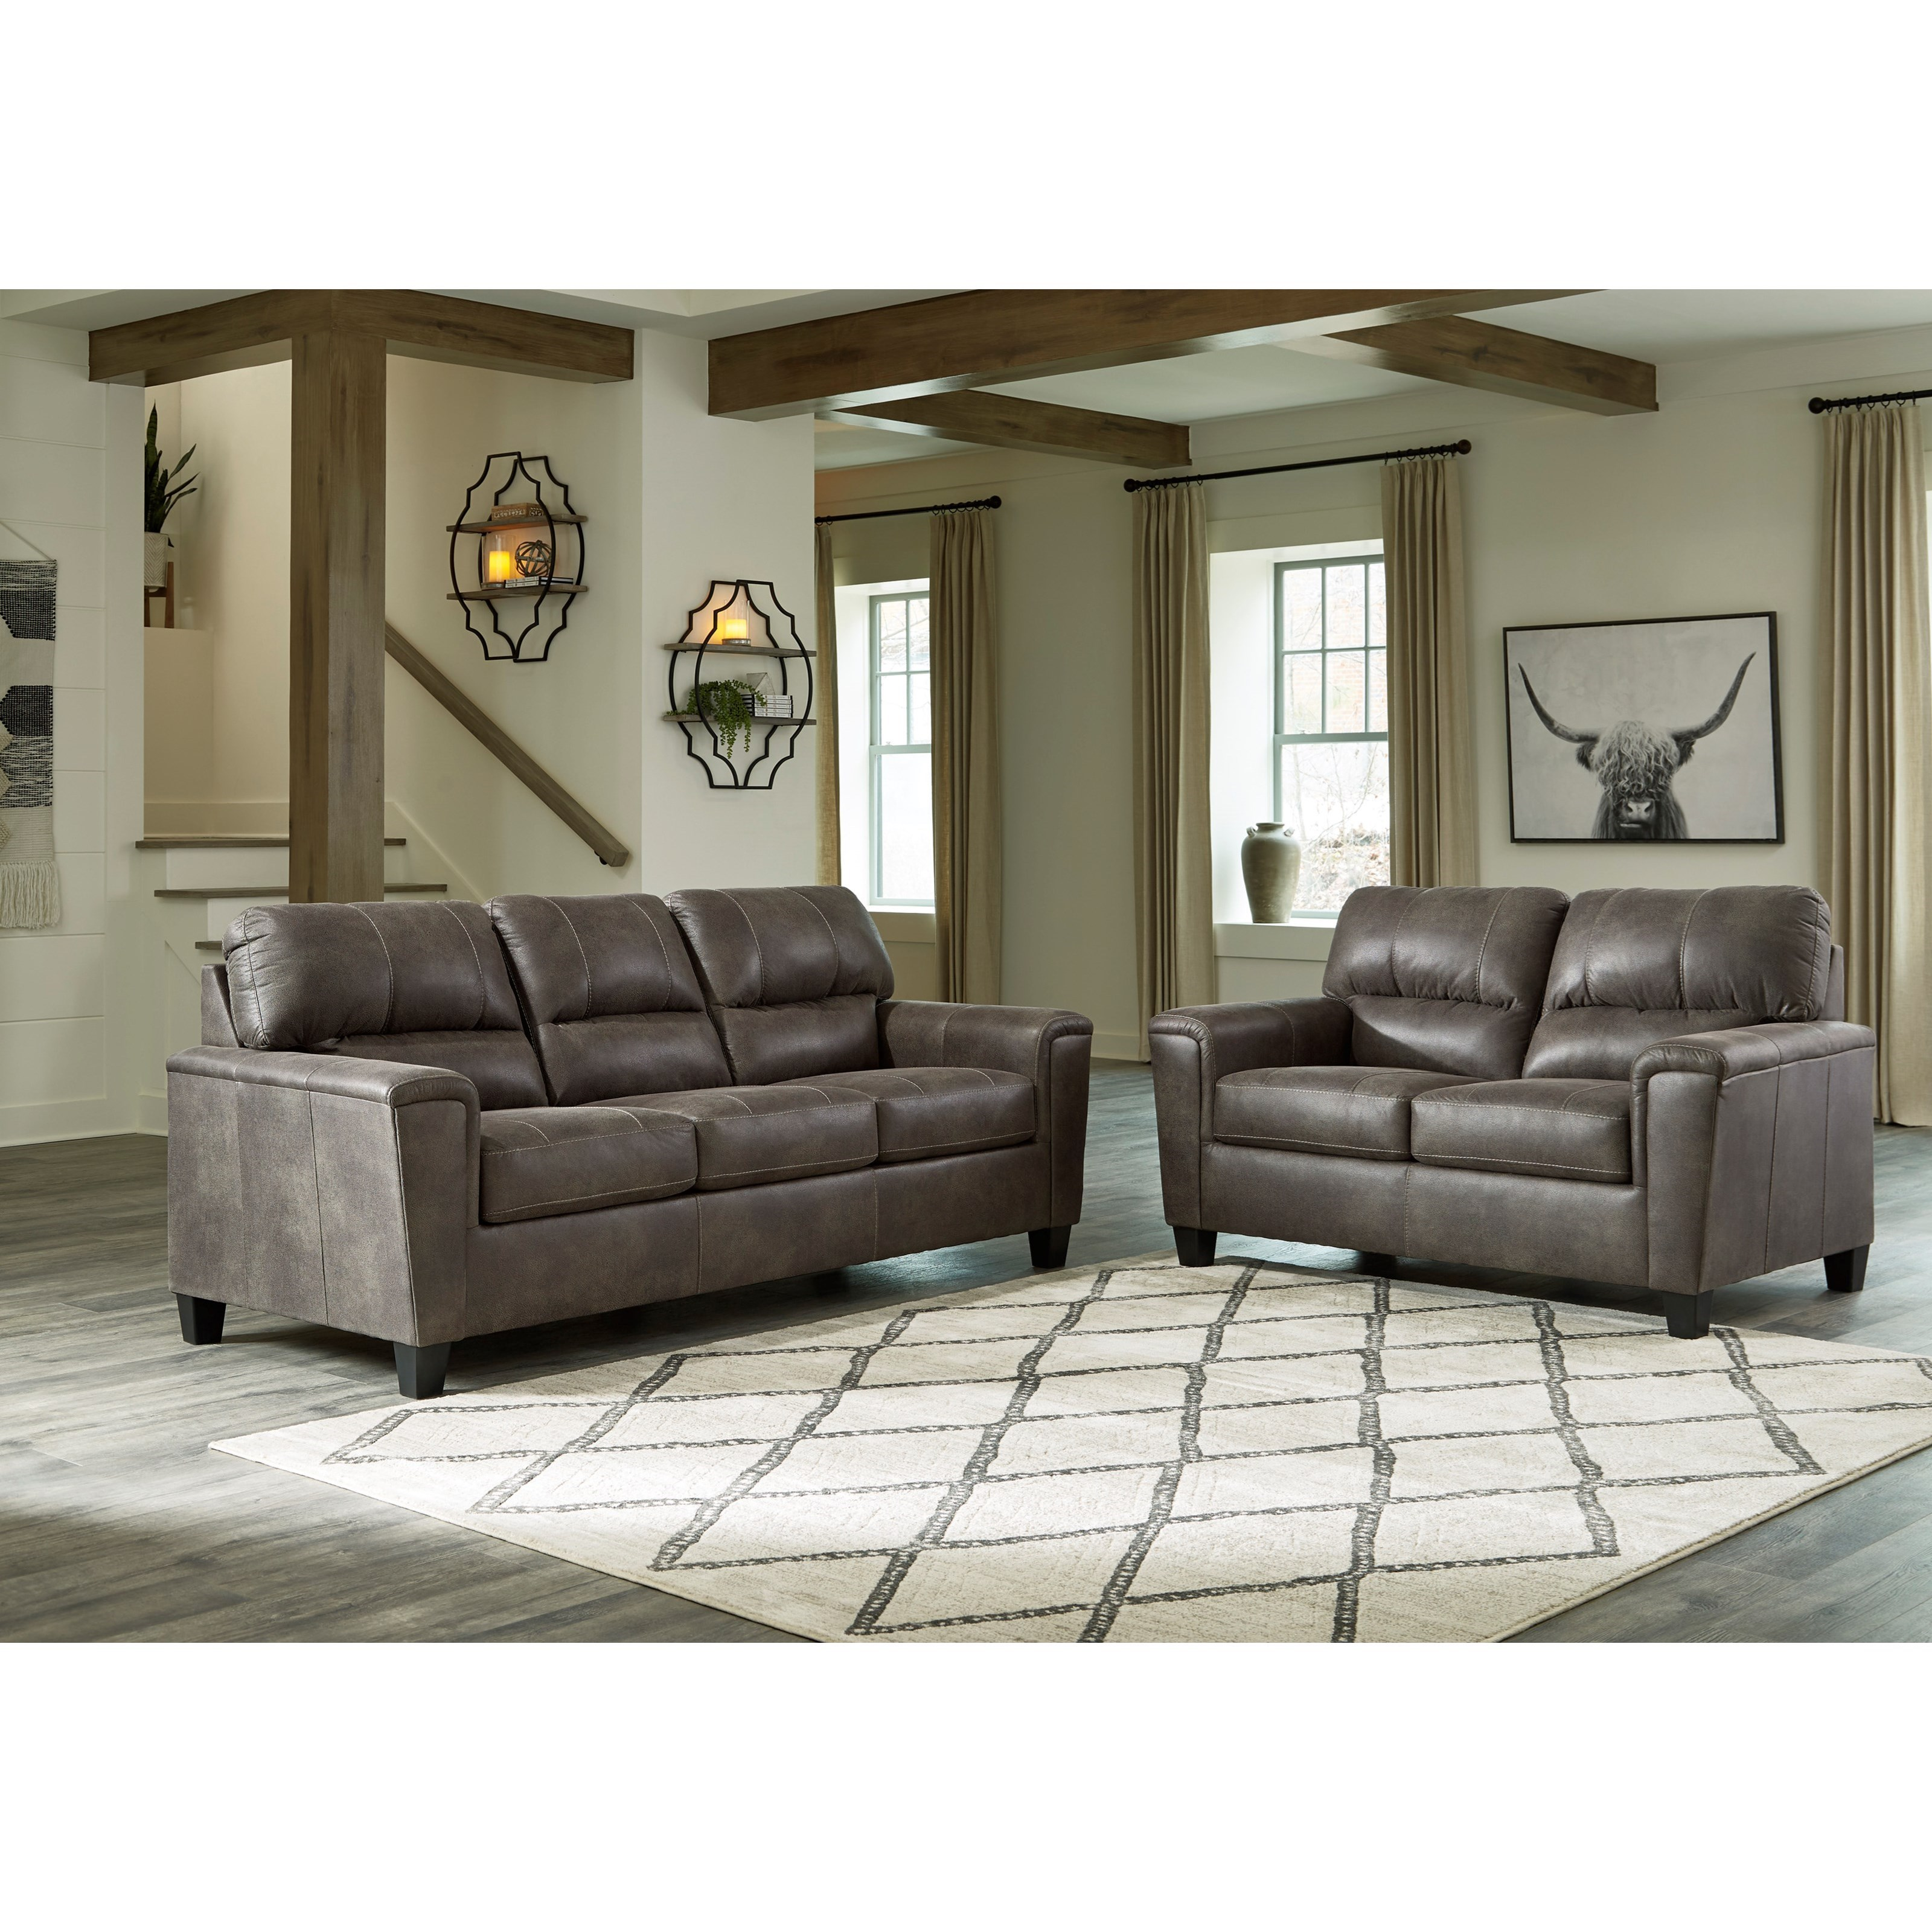 Navi Living Room Group by Signature Design by Ashley at Sparks HomeStore